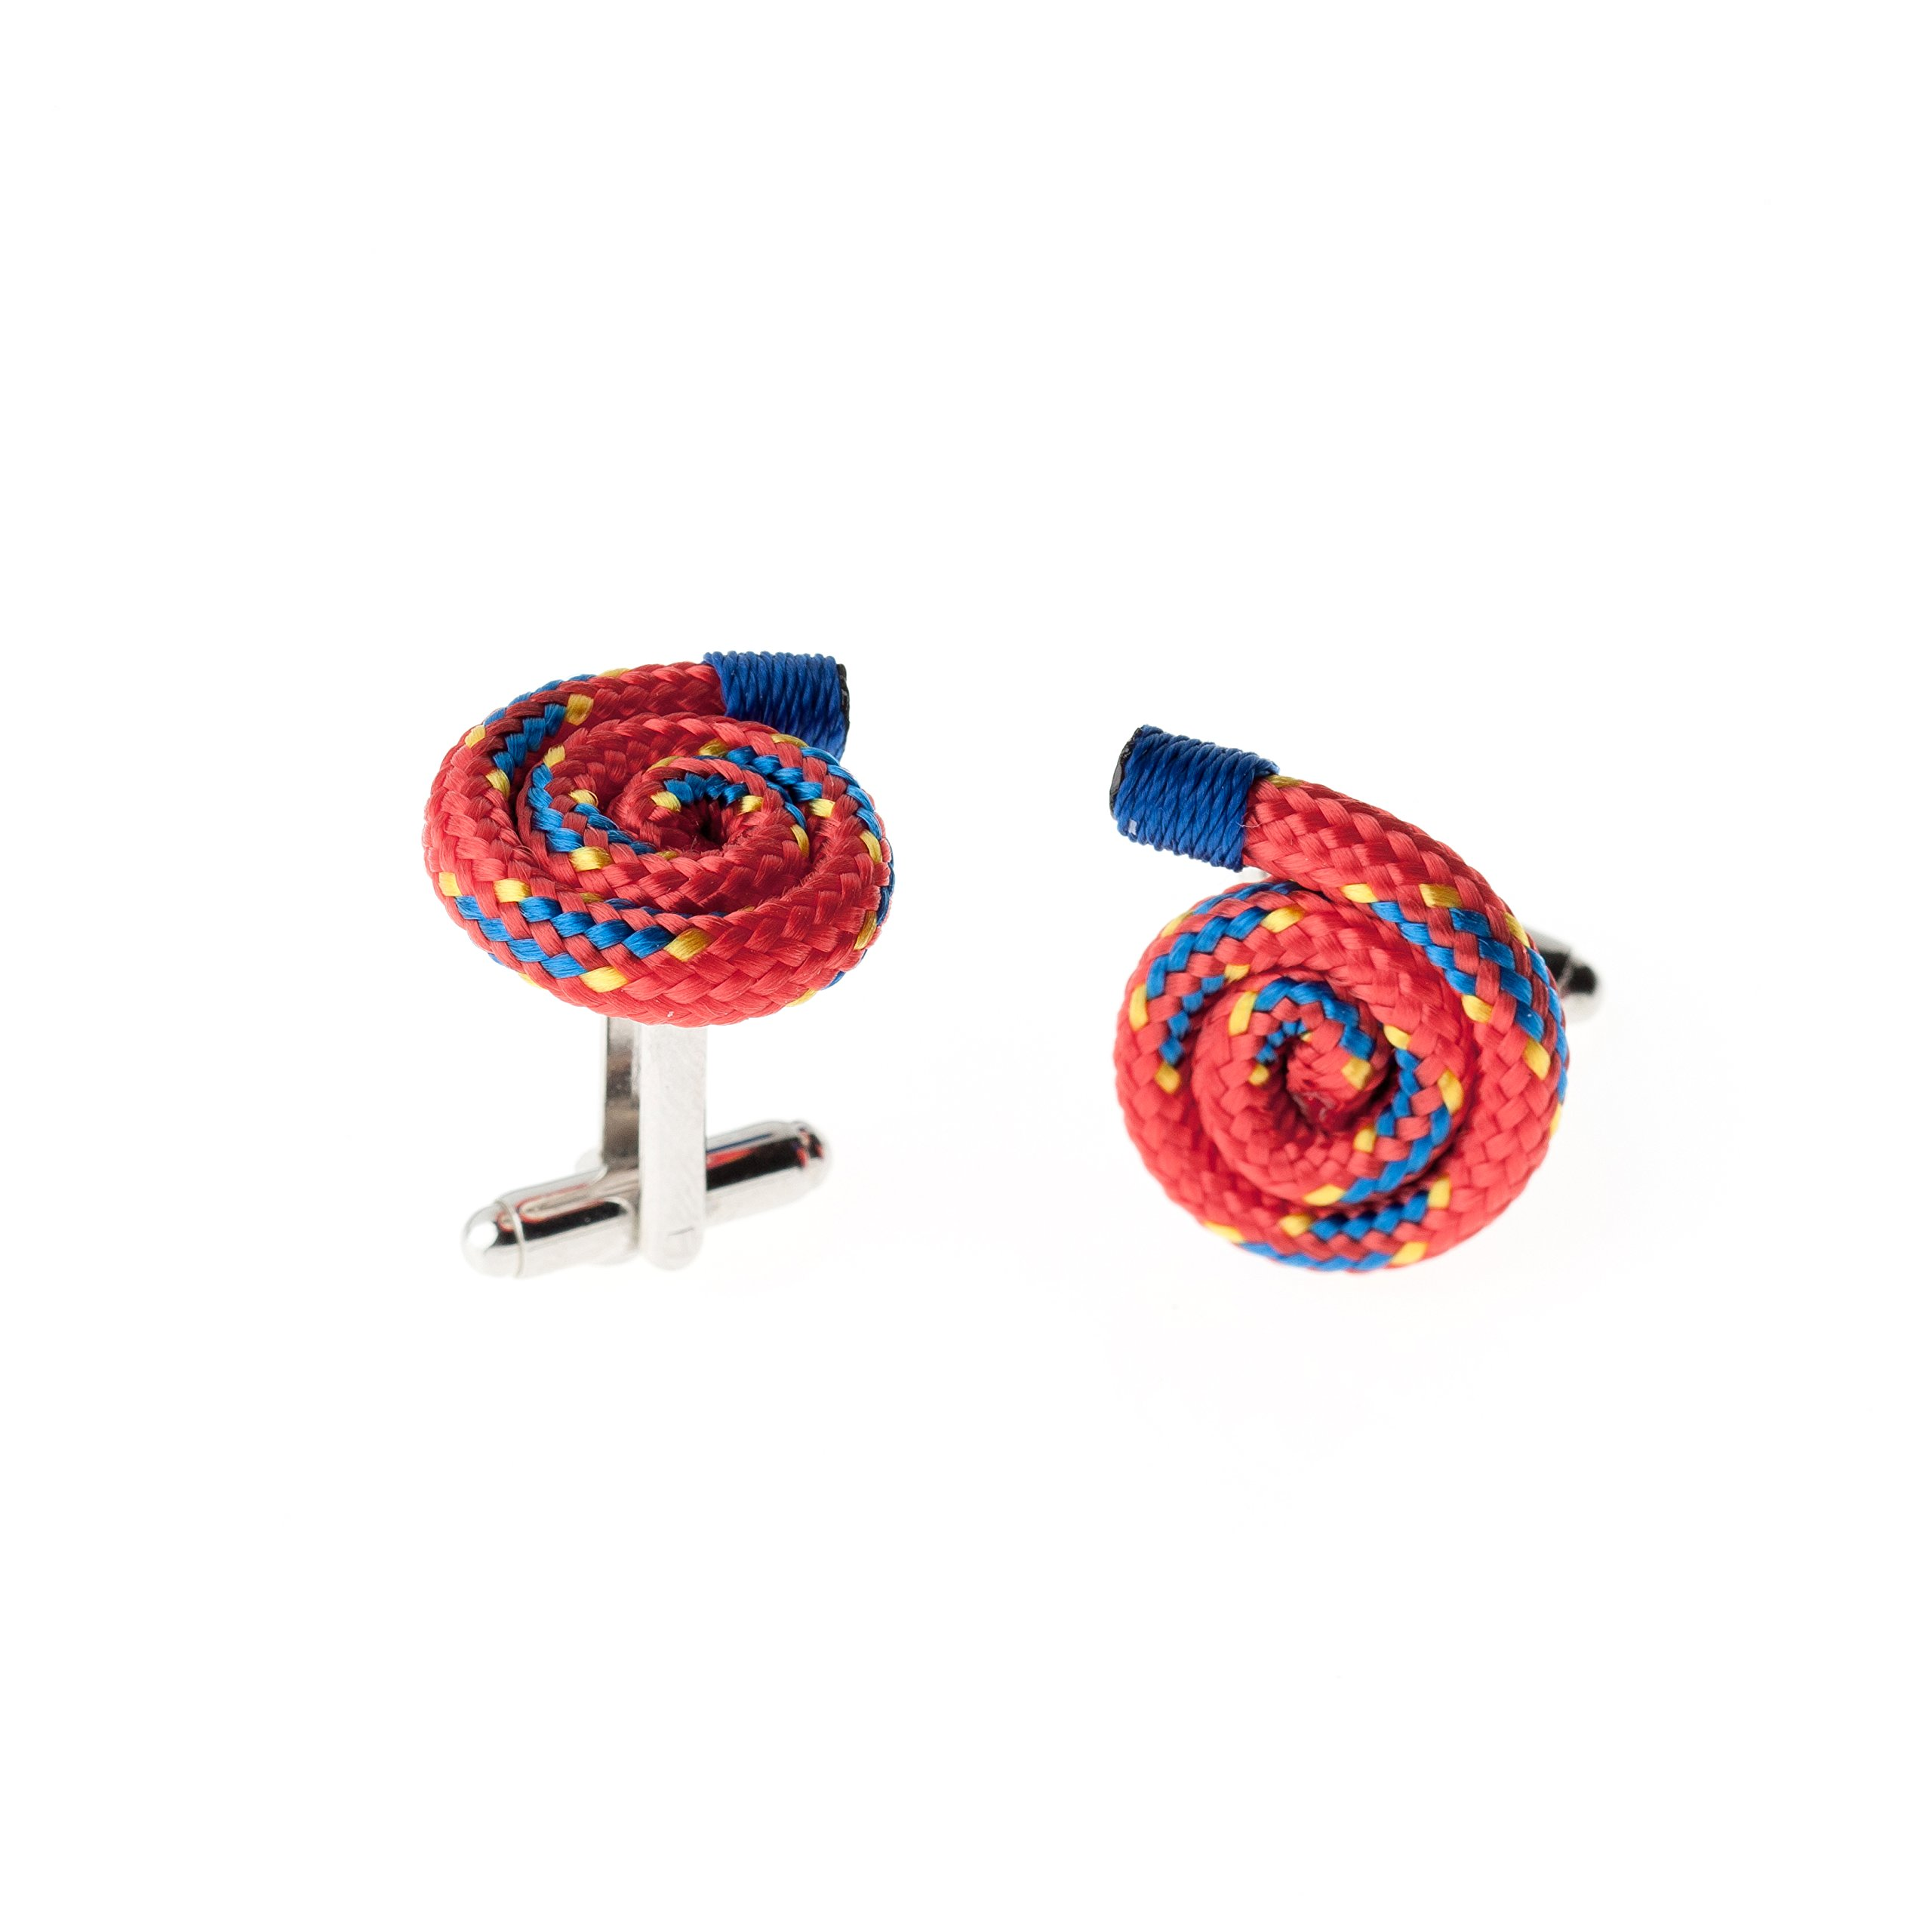 Red Designer Unique Stylish Handmade Rope String Cufflinks for Men